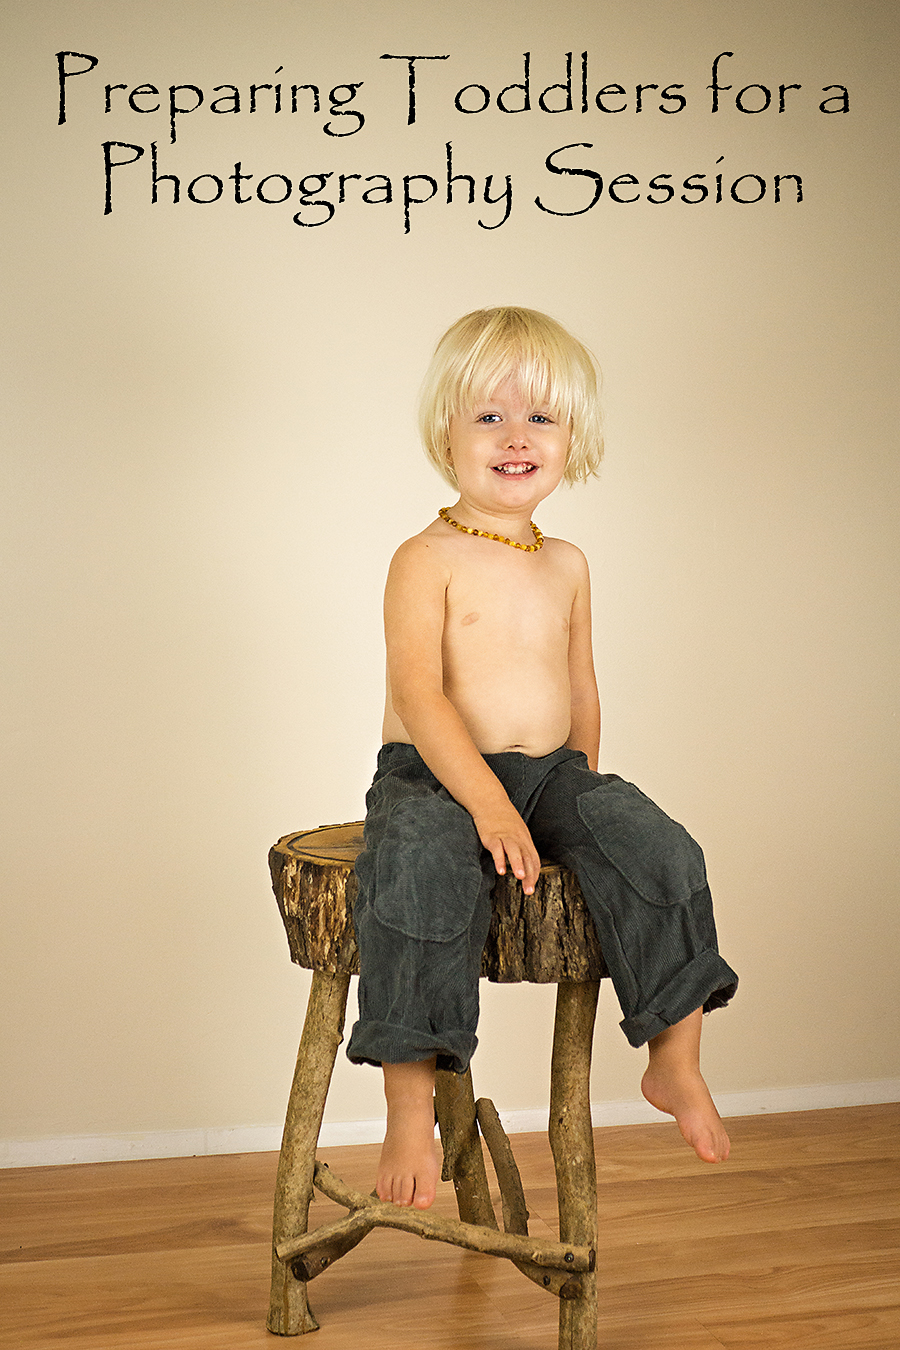 Preparing Toddlers for a Photography Session